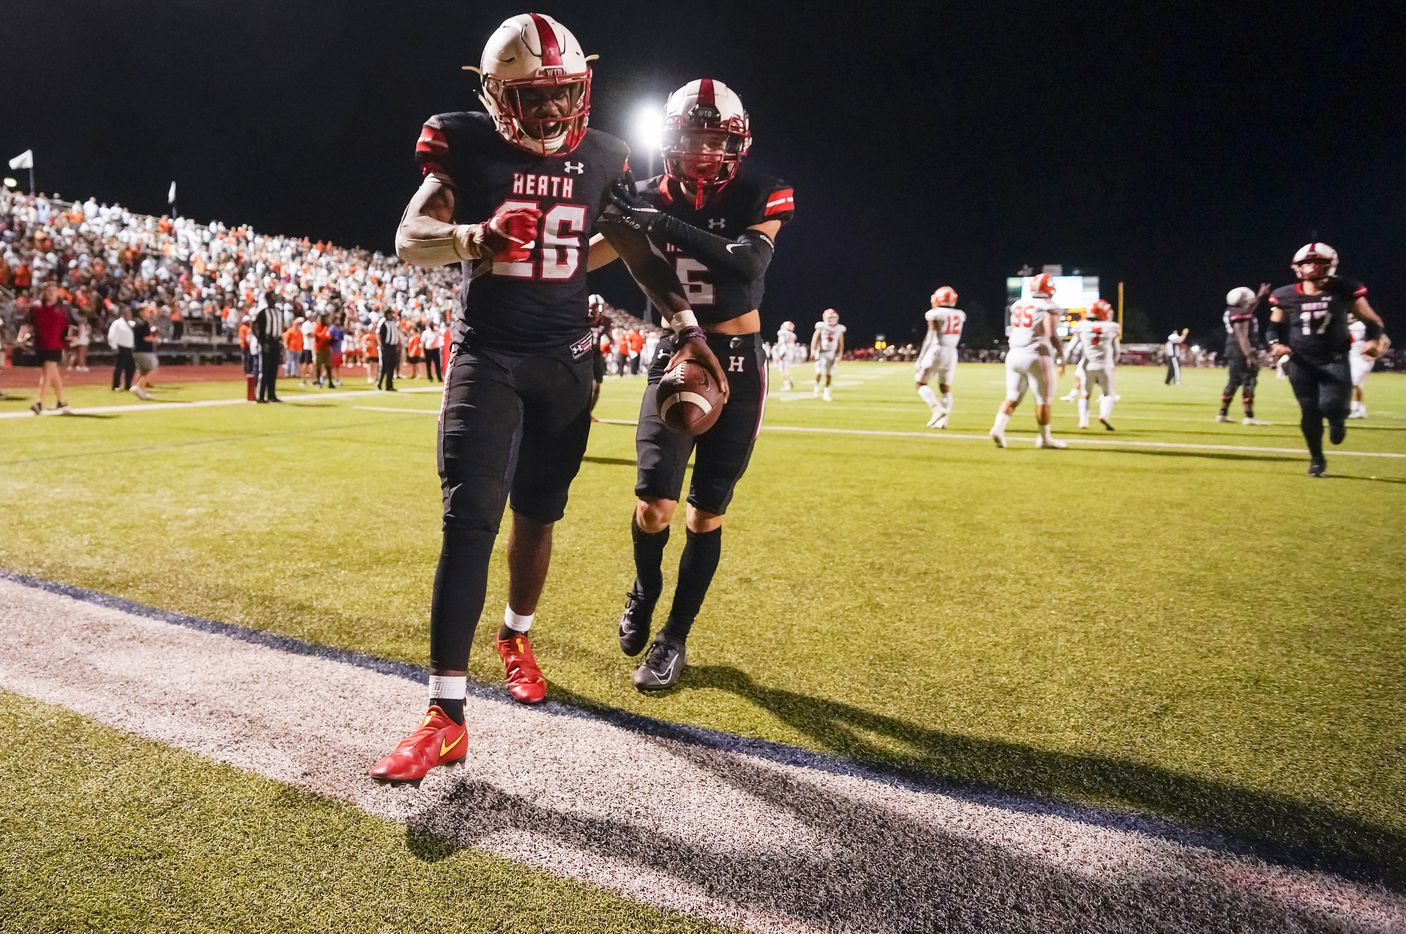 Rockwall-Heath running back  Zach Evans (26) celebrates after scoring on a 3-yard touchdown during overtime in a District 10-6A high school football game against Rockwall at Wilkerson-Sanders Stadium on Friday, Sept. 24, 2021, in Rockwall.  Rockwall-Heath won the game 79-71 in double overtime.